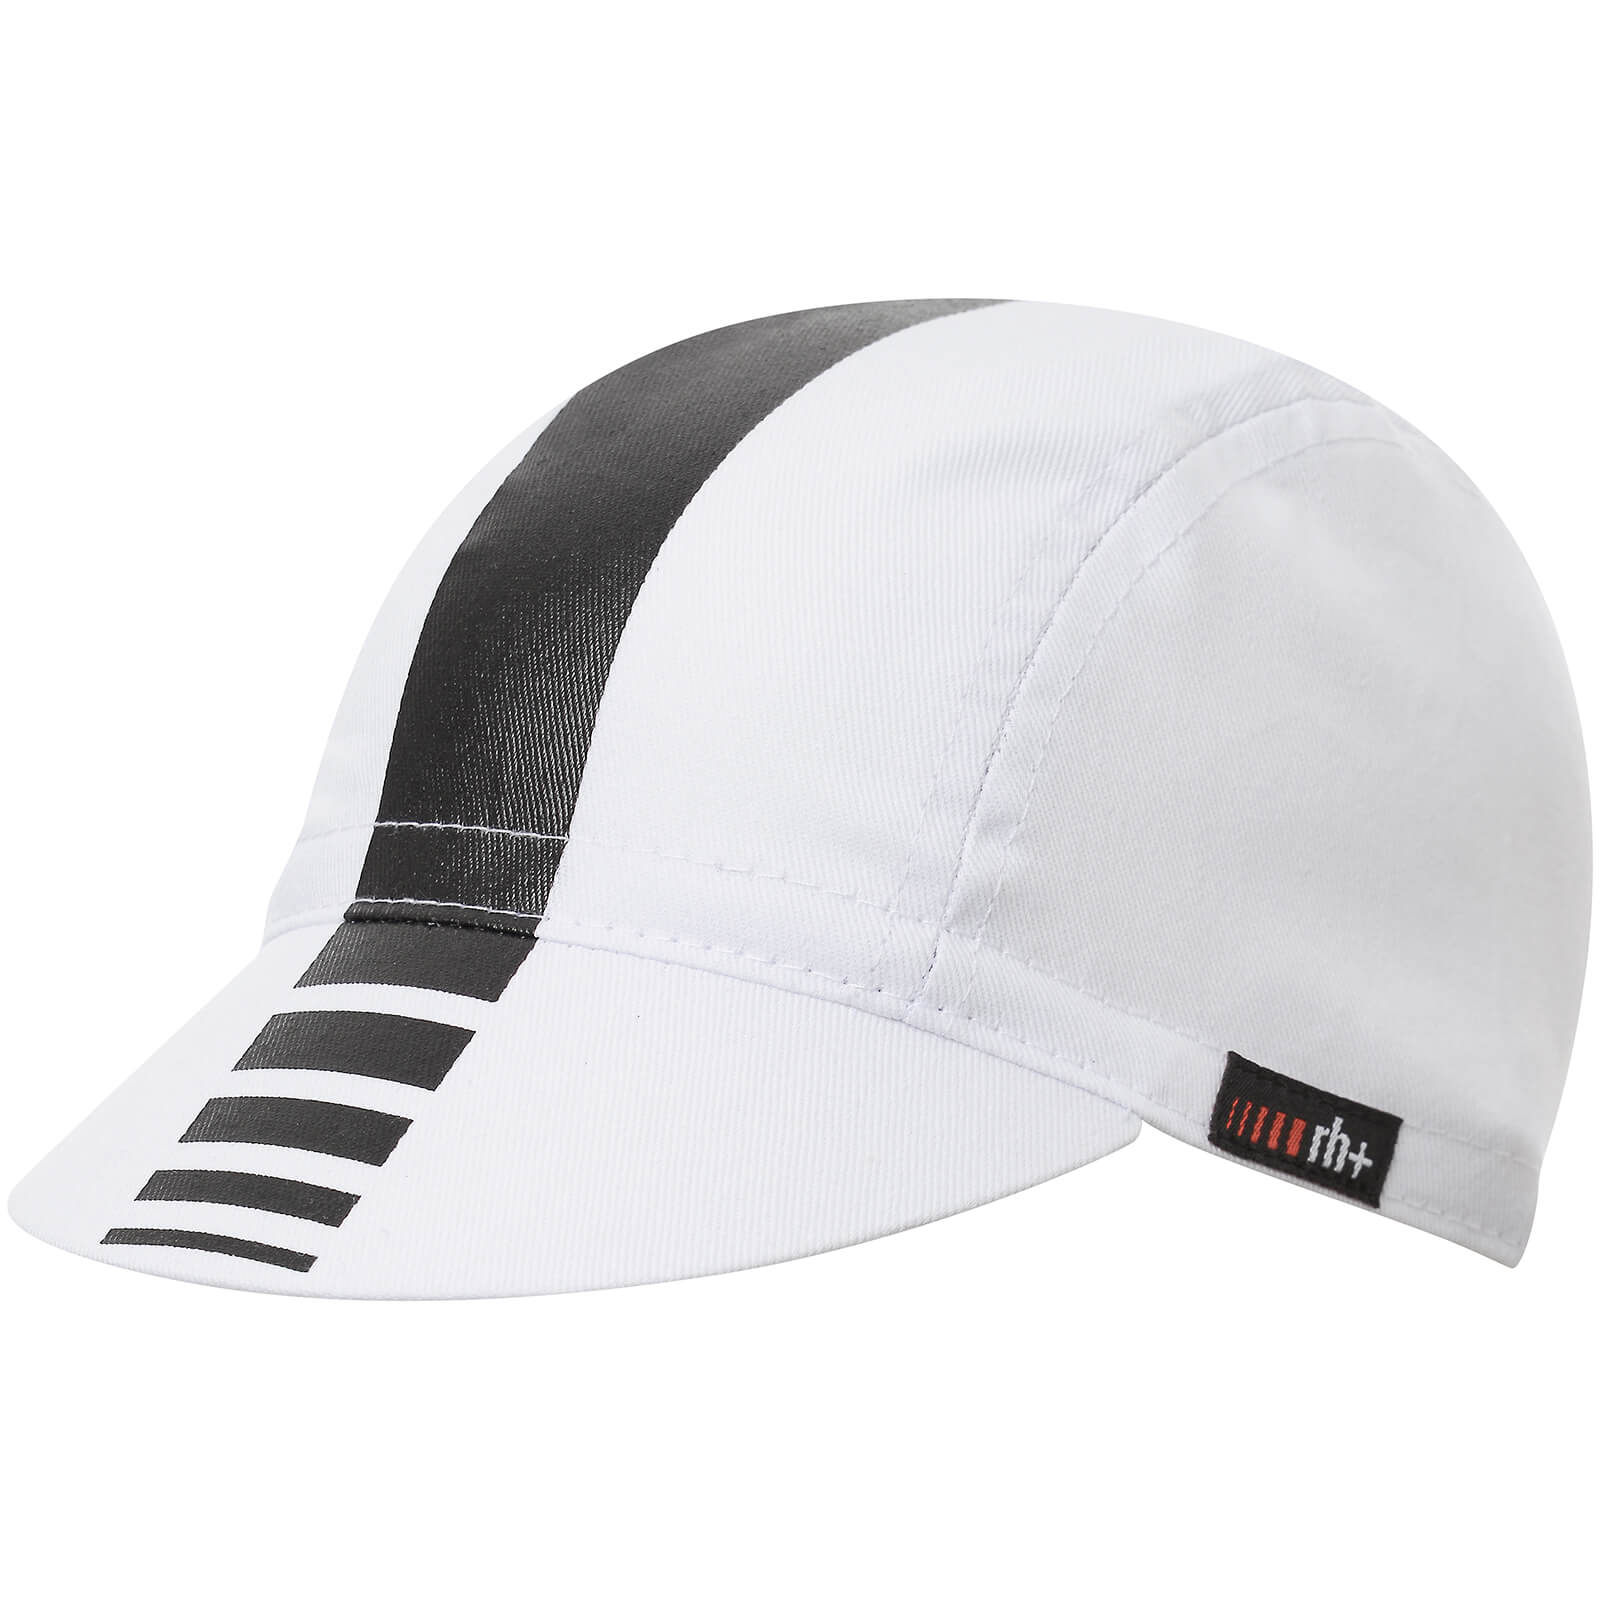 RH+ Logo Cycling Cap - White/Black